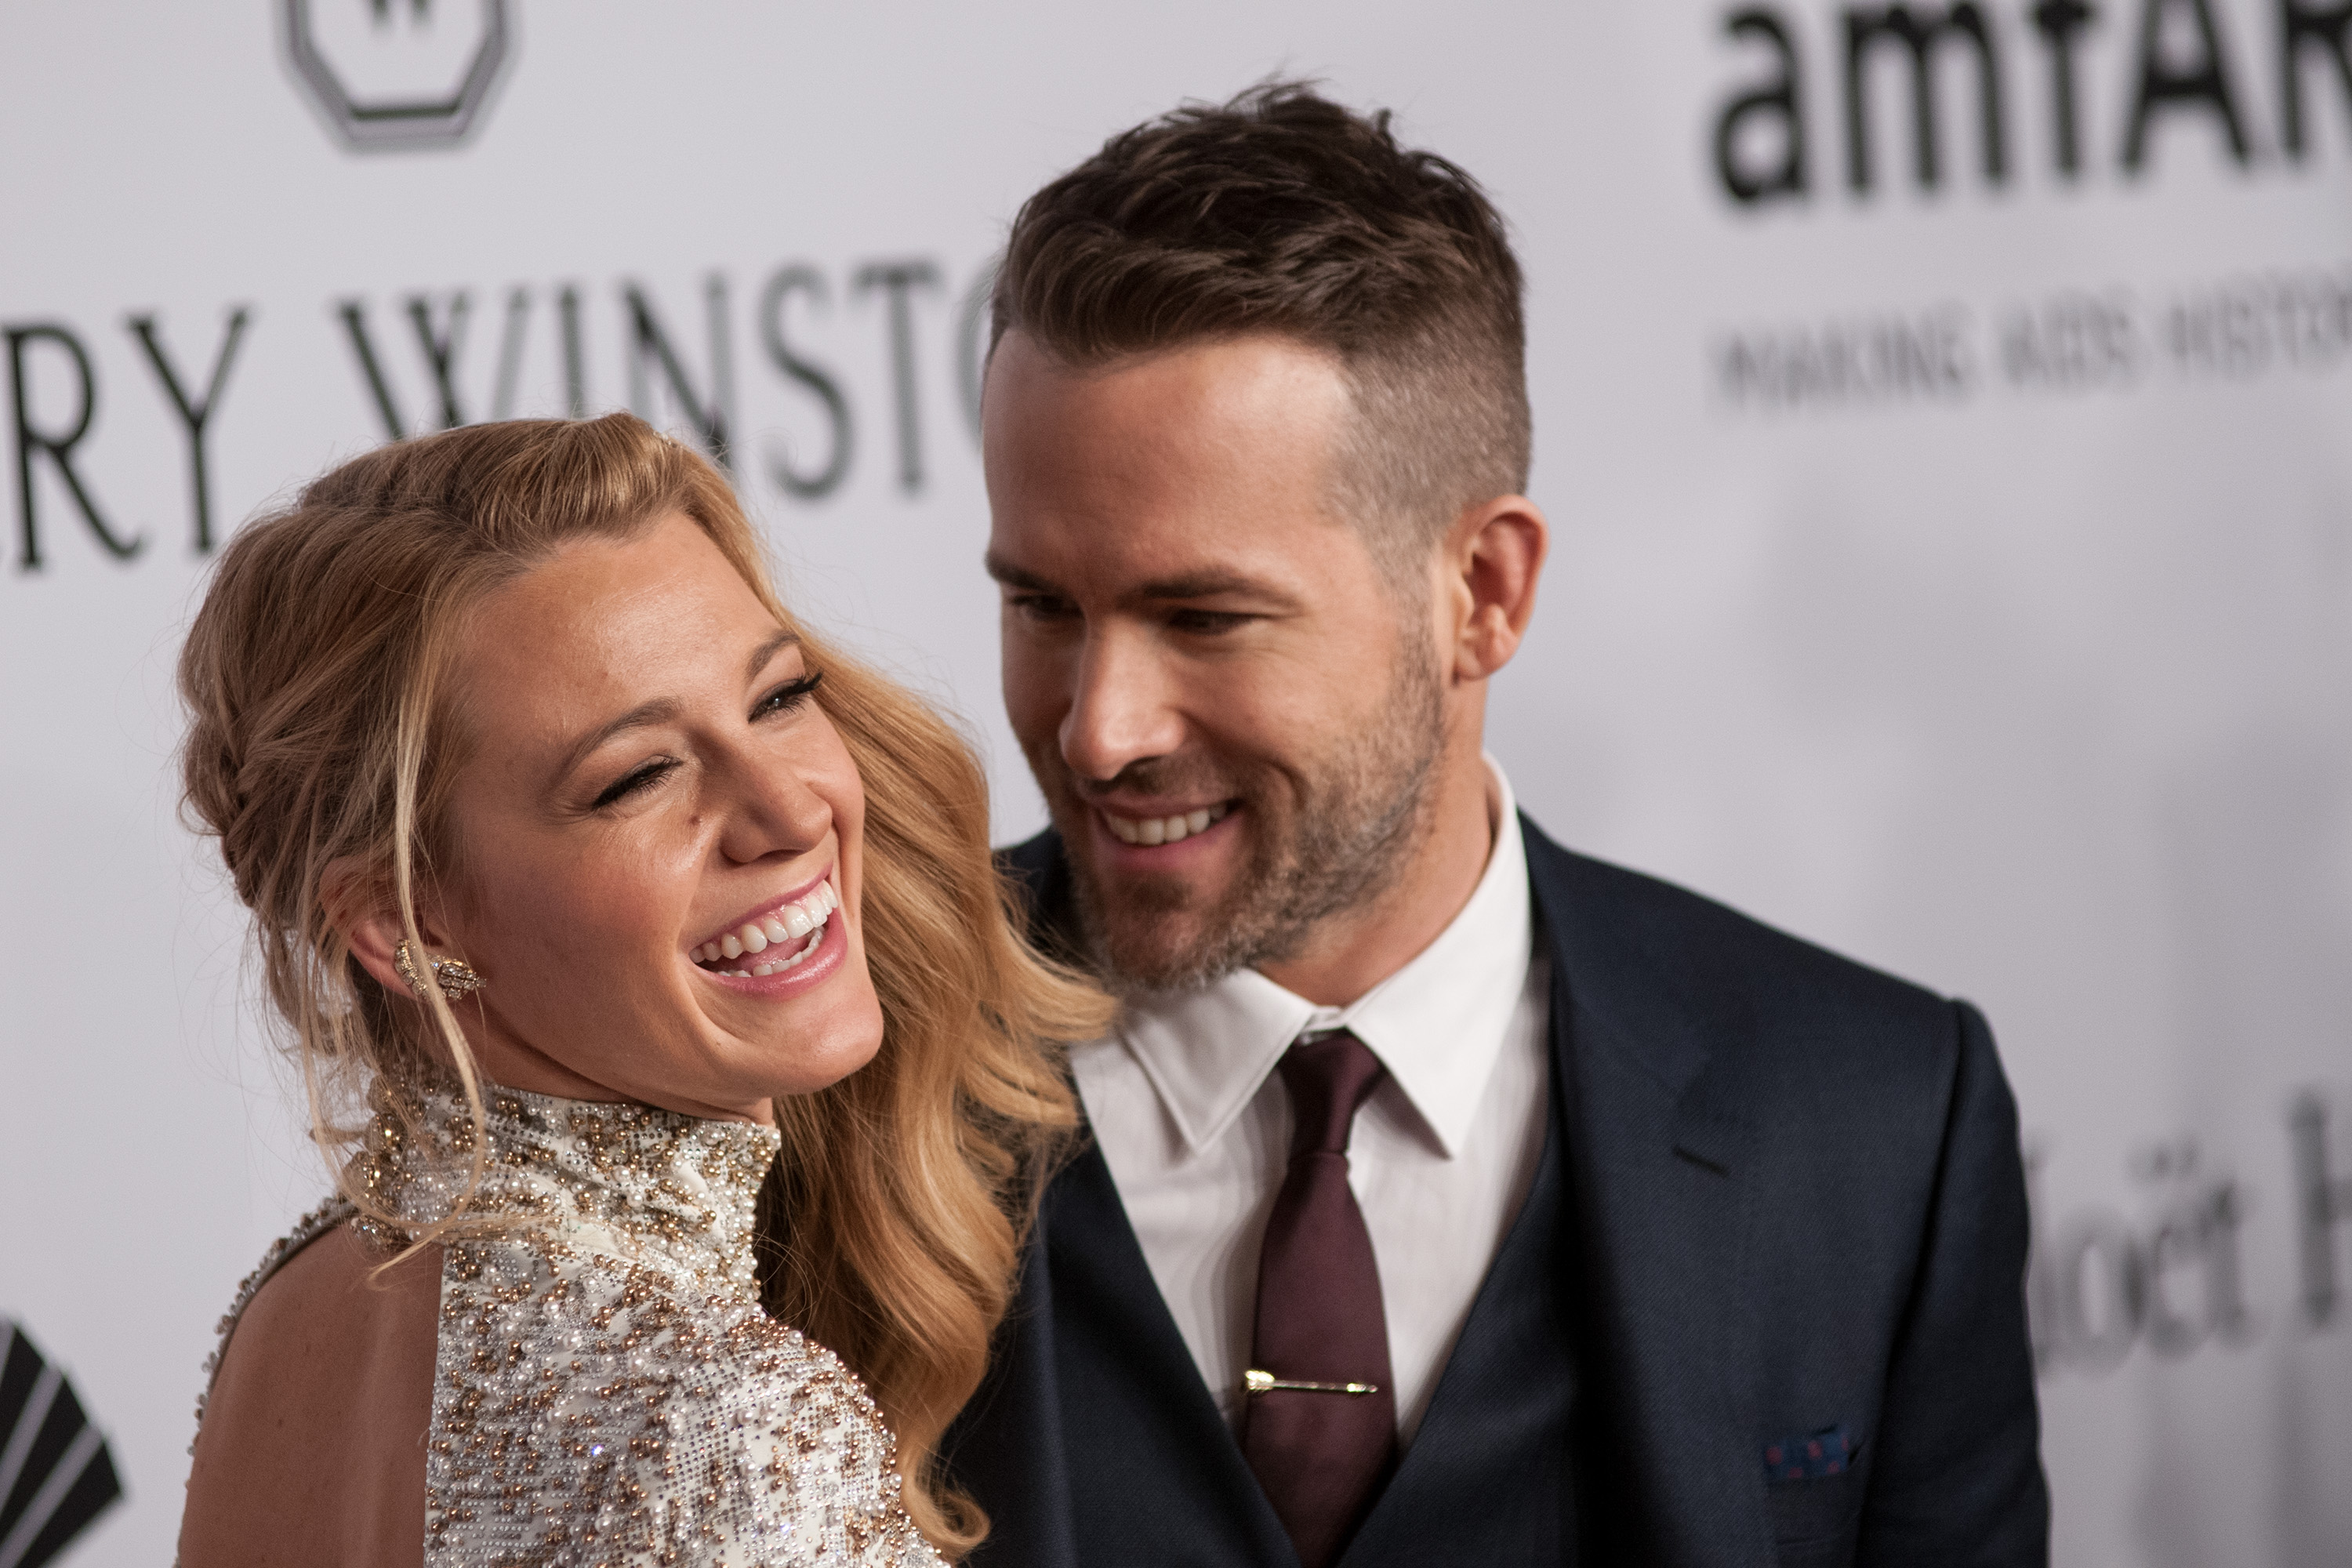 Ryan Reynolds and Blake Lively's birthday posts are #CoupleGoals. (Photo: WENN)